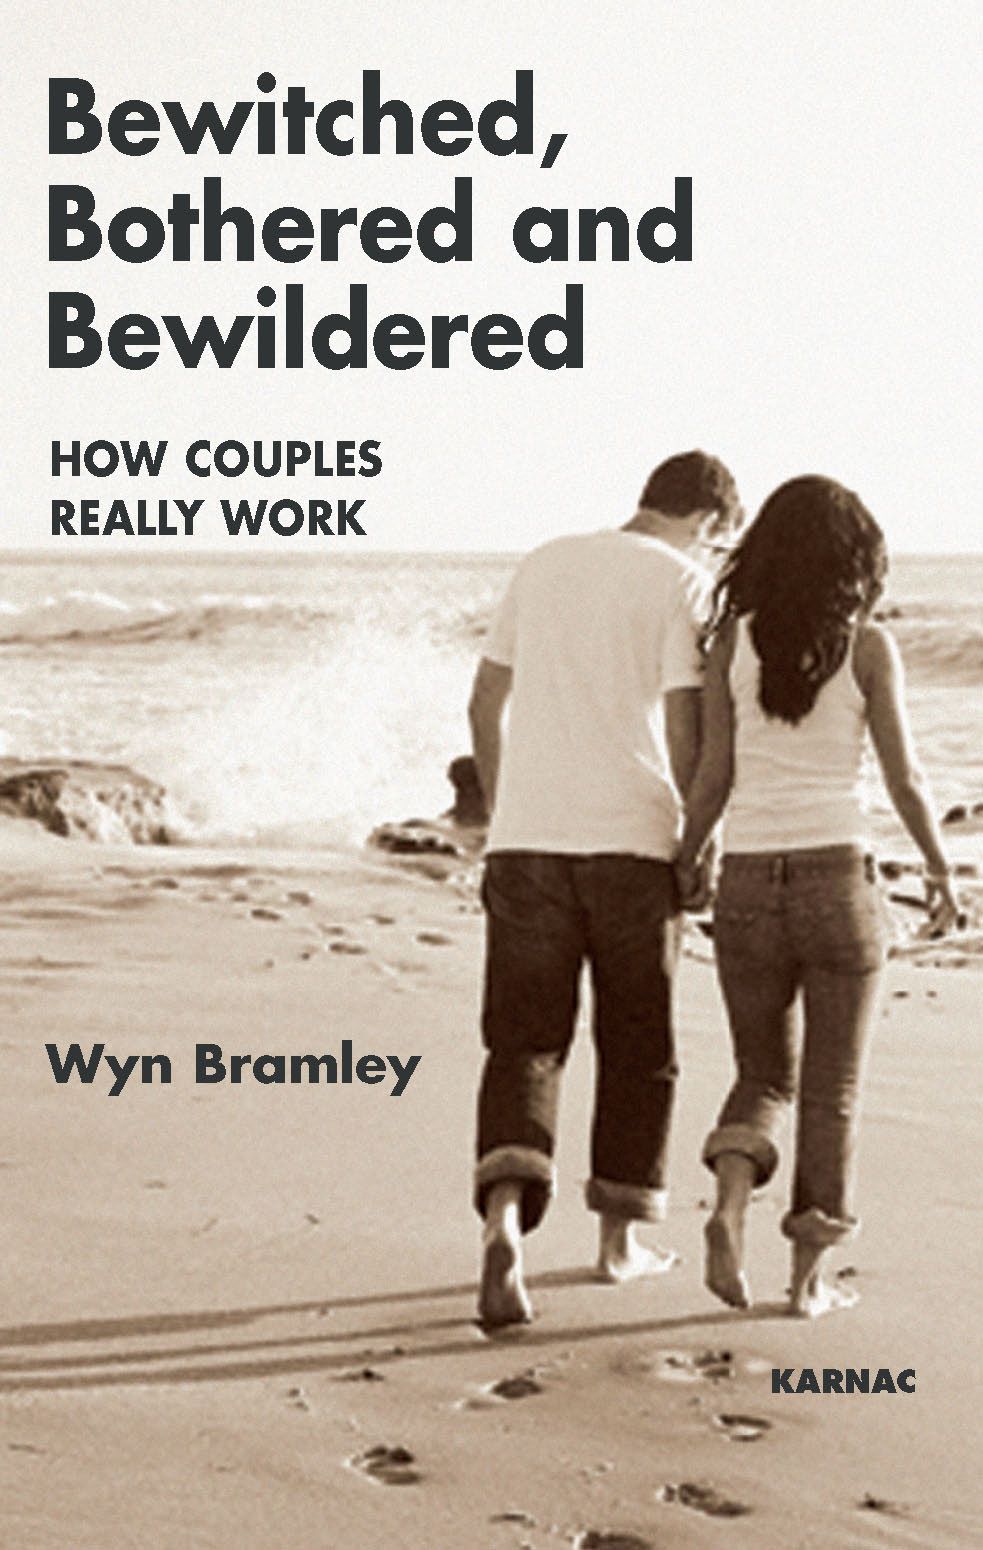 Bewitched, Bothered and Bewildered: How Couples Really Work By: Wyn Bramley